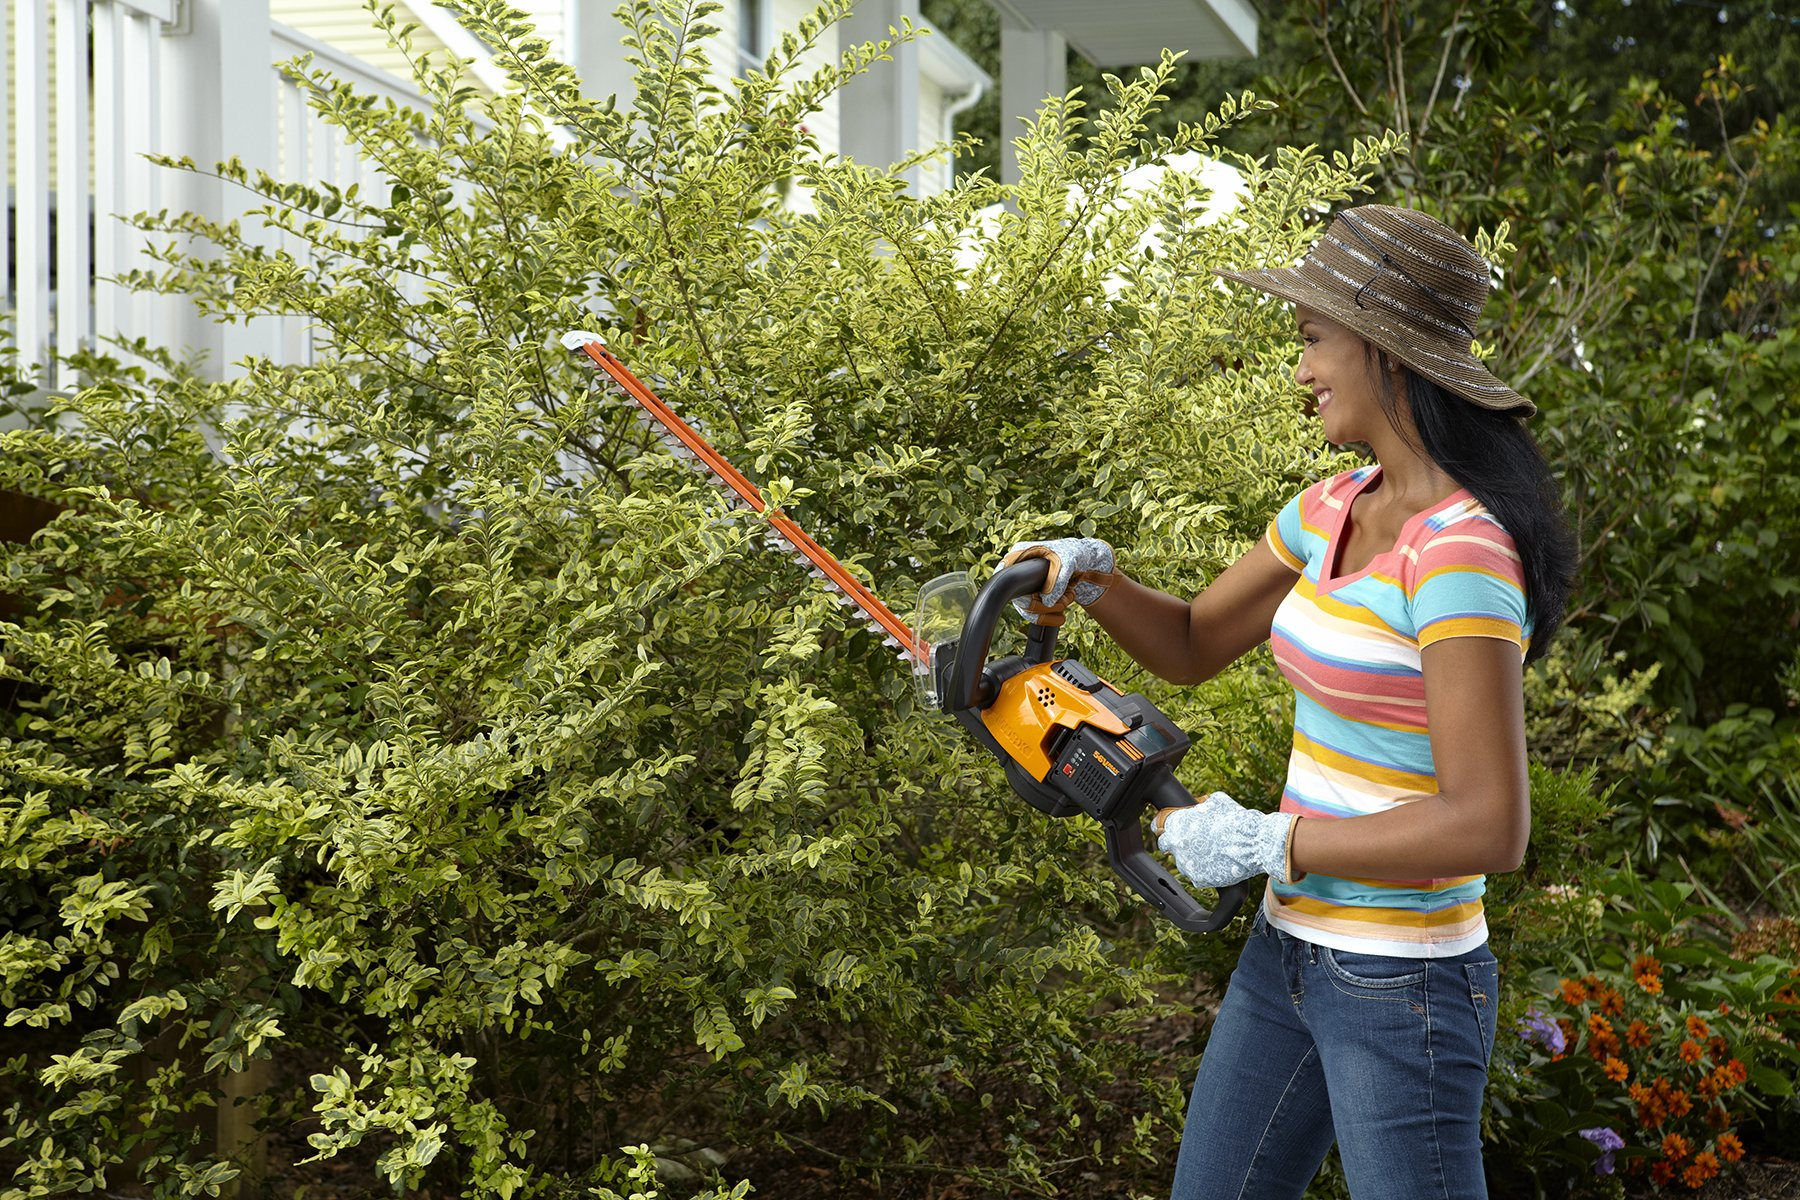 WORX WG291 56V Lithium-Ion Cordless Hedge Trimmer, 24-Inch, Battery and Charger Included by Worx (Image #5)